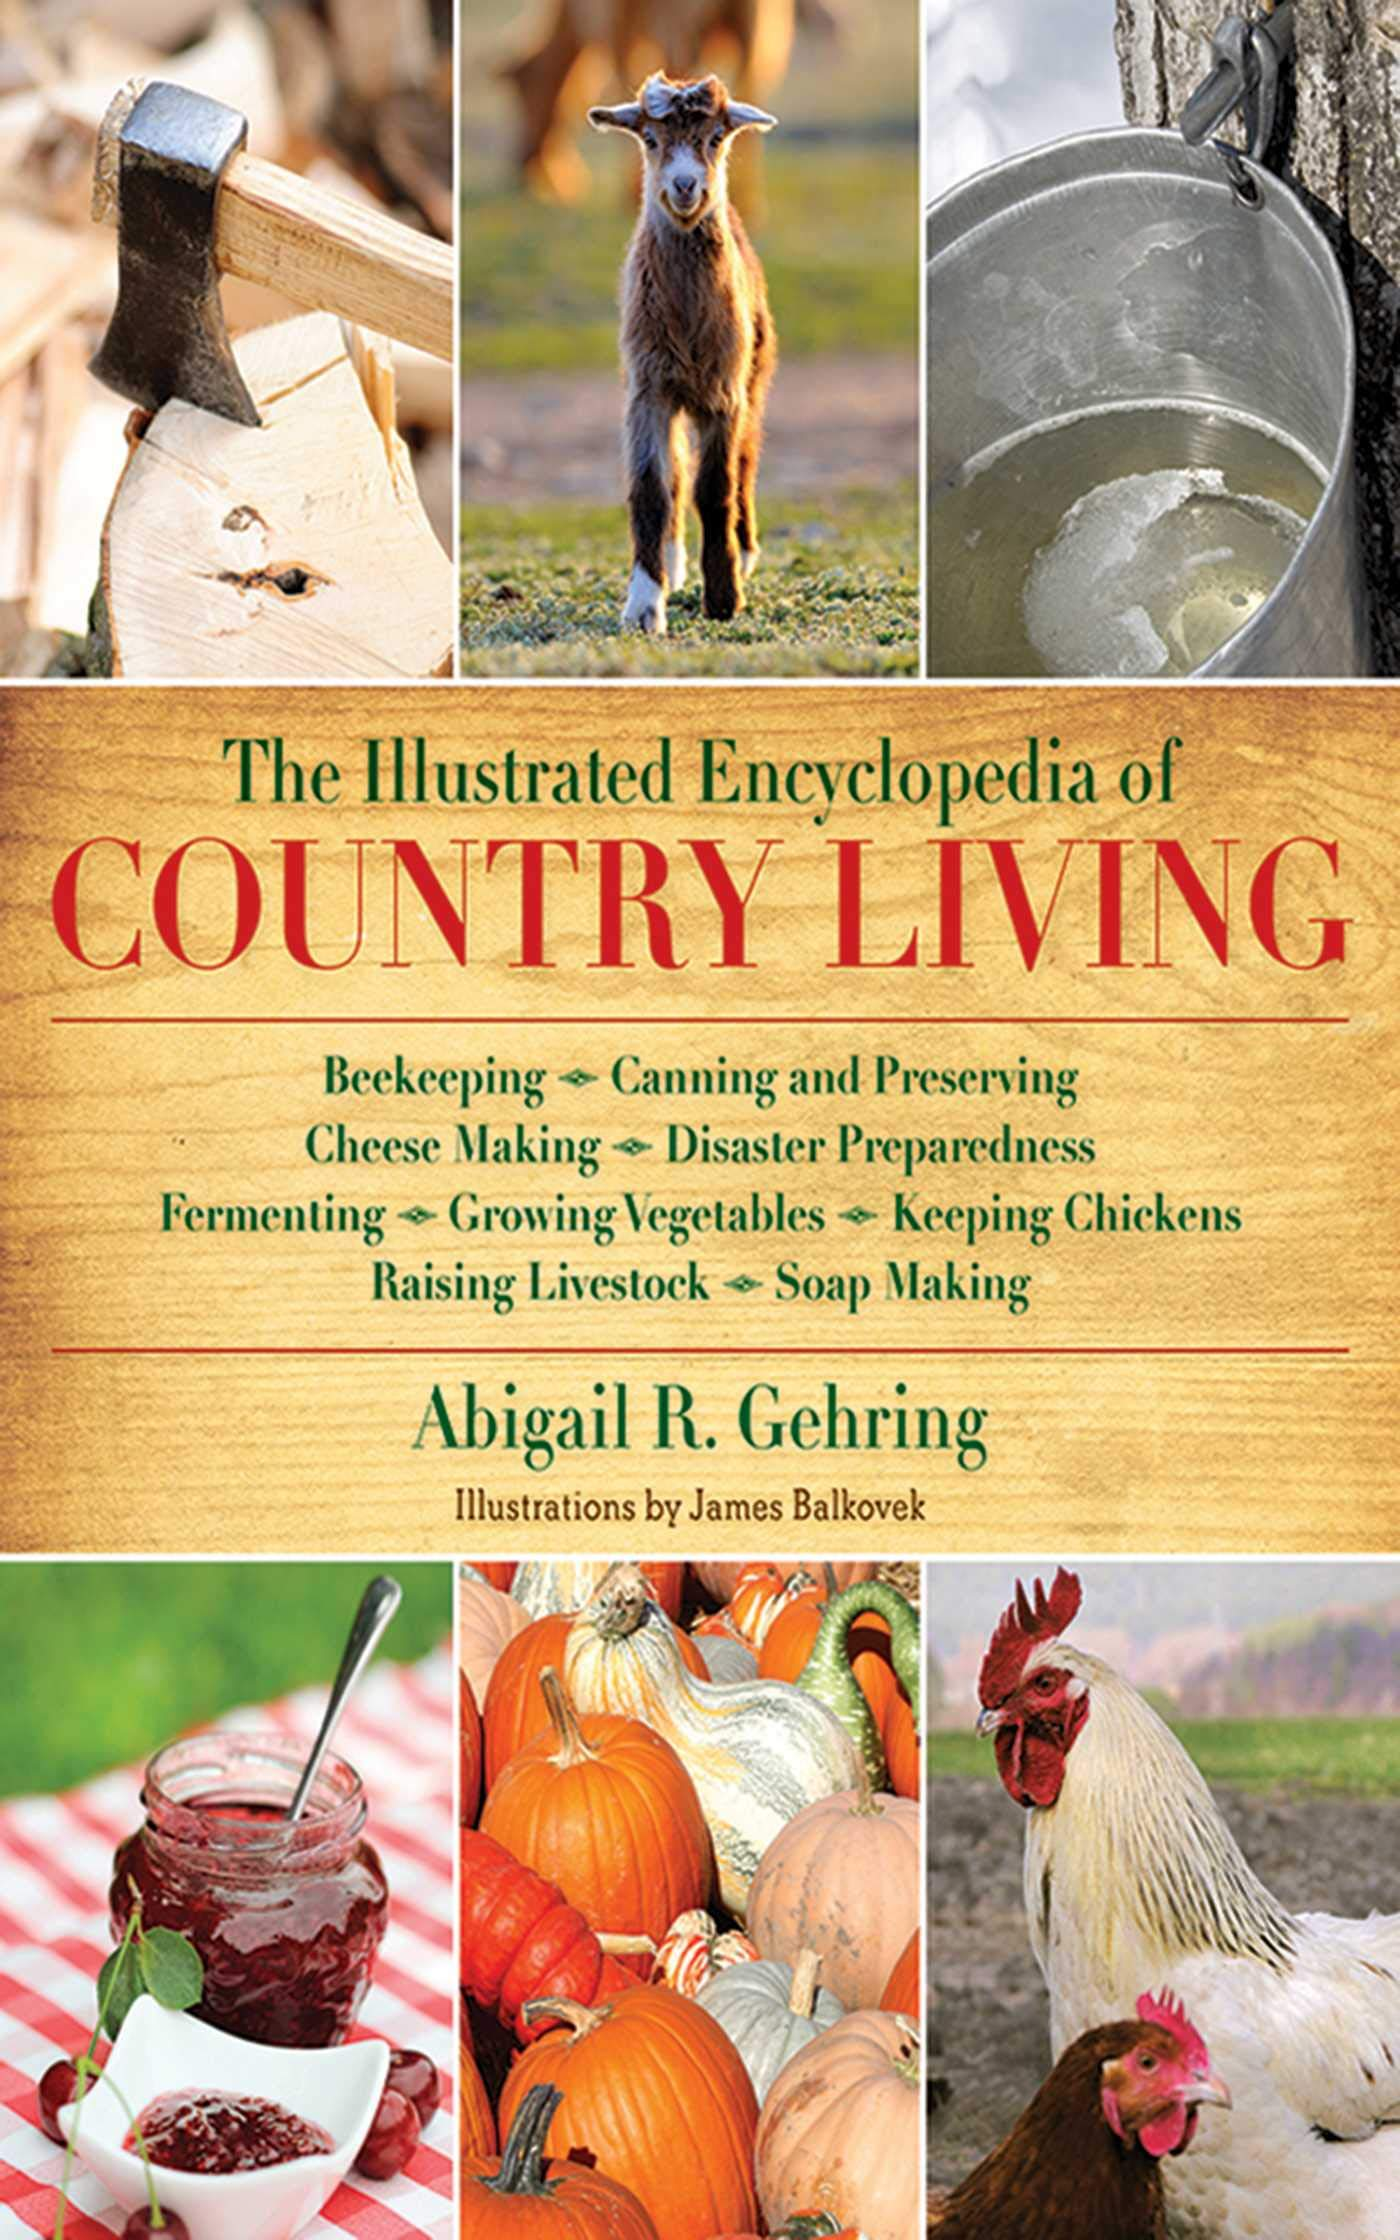 74fffba94 The Illustrated Encyclopedia of Country Living: Beekeeping, Canning and  Preserving, Cheese Making, Disaster Preparedness, Fermenting, Growing .